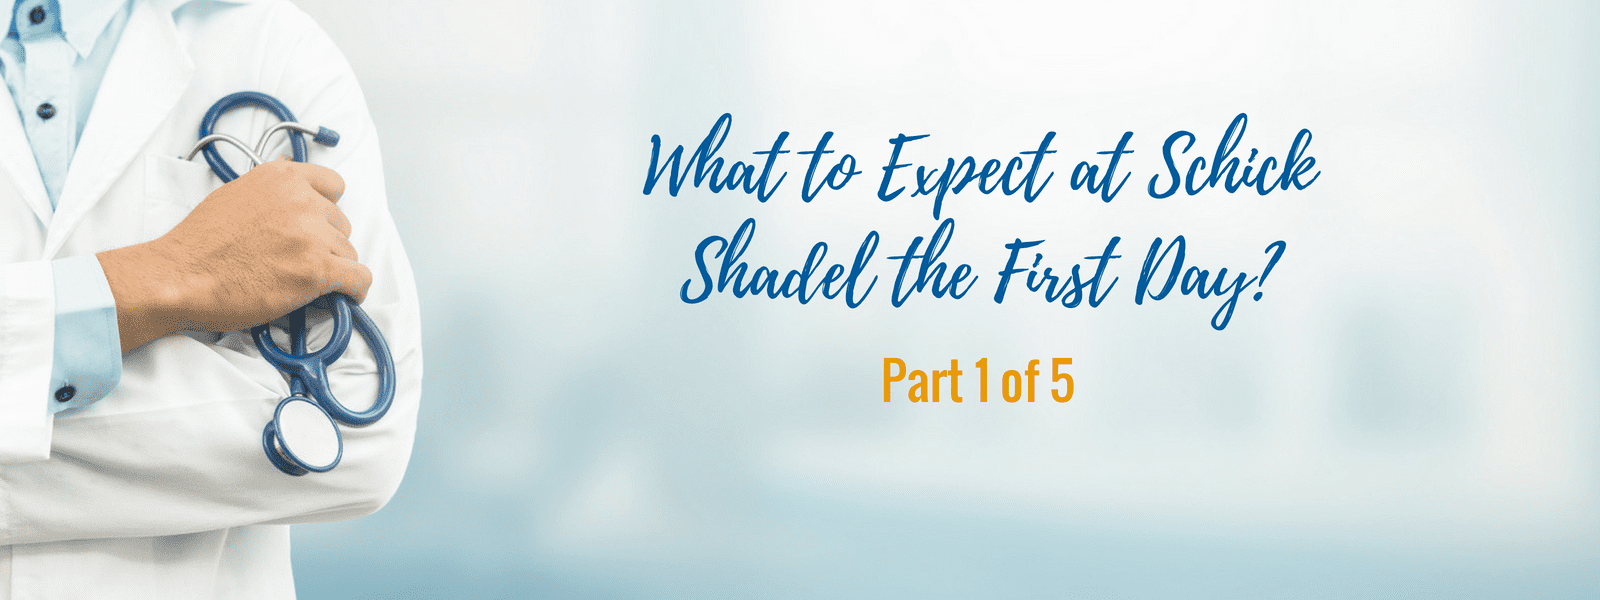 What to expect at schick shadel the first day - Schick Shadel Hospital - detox - blog